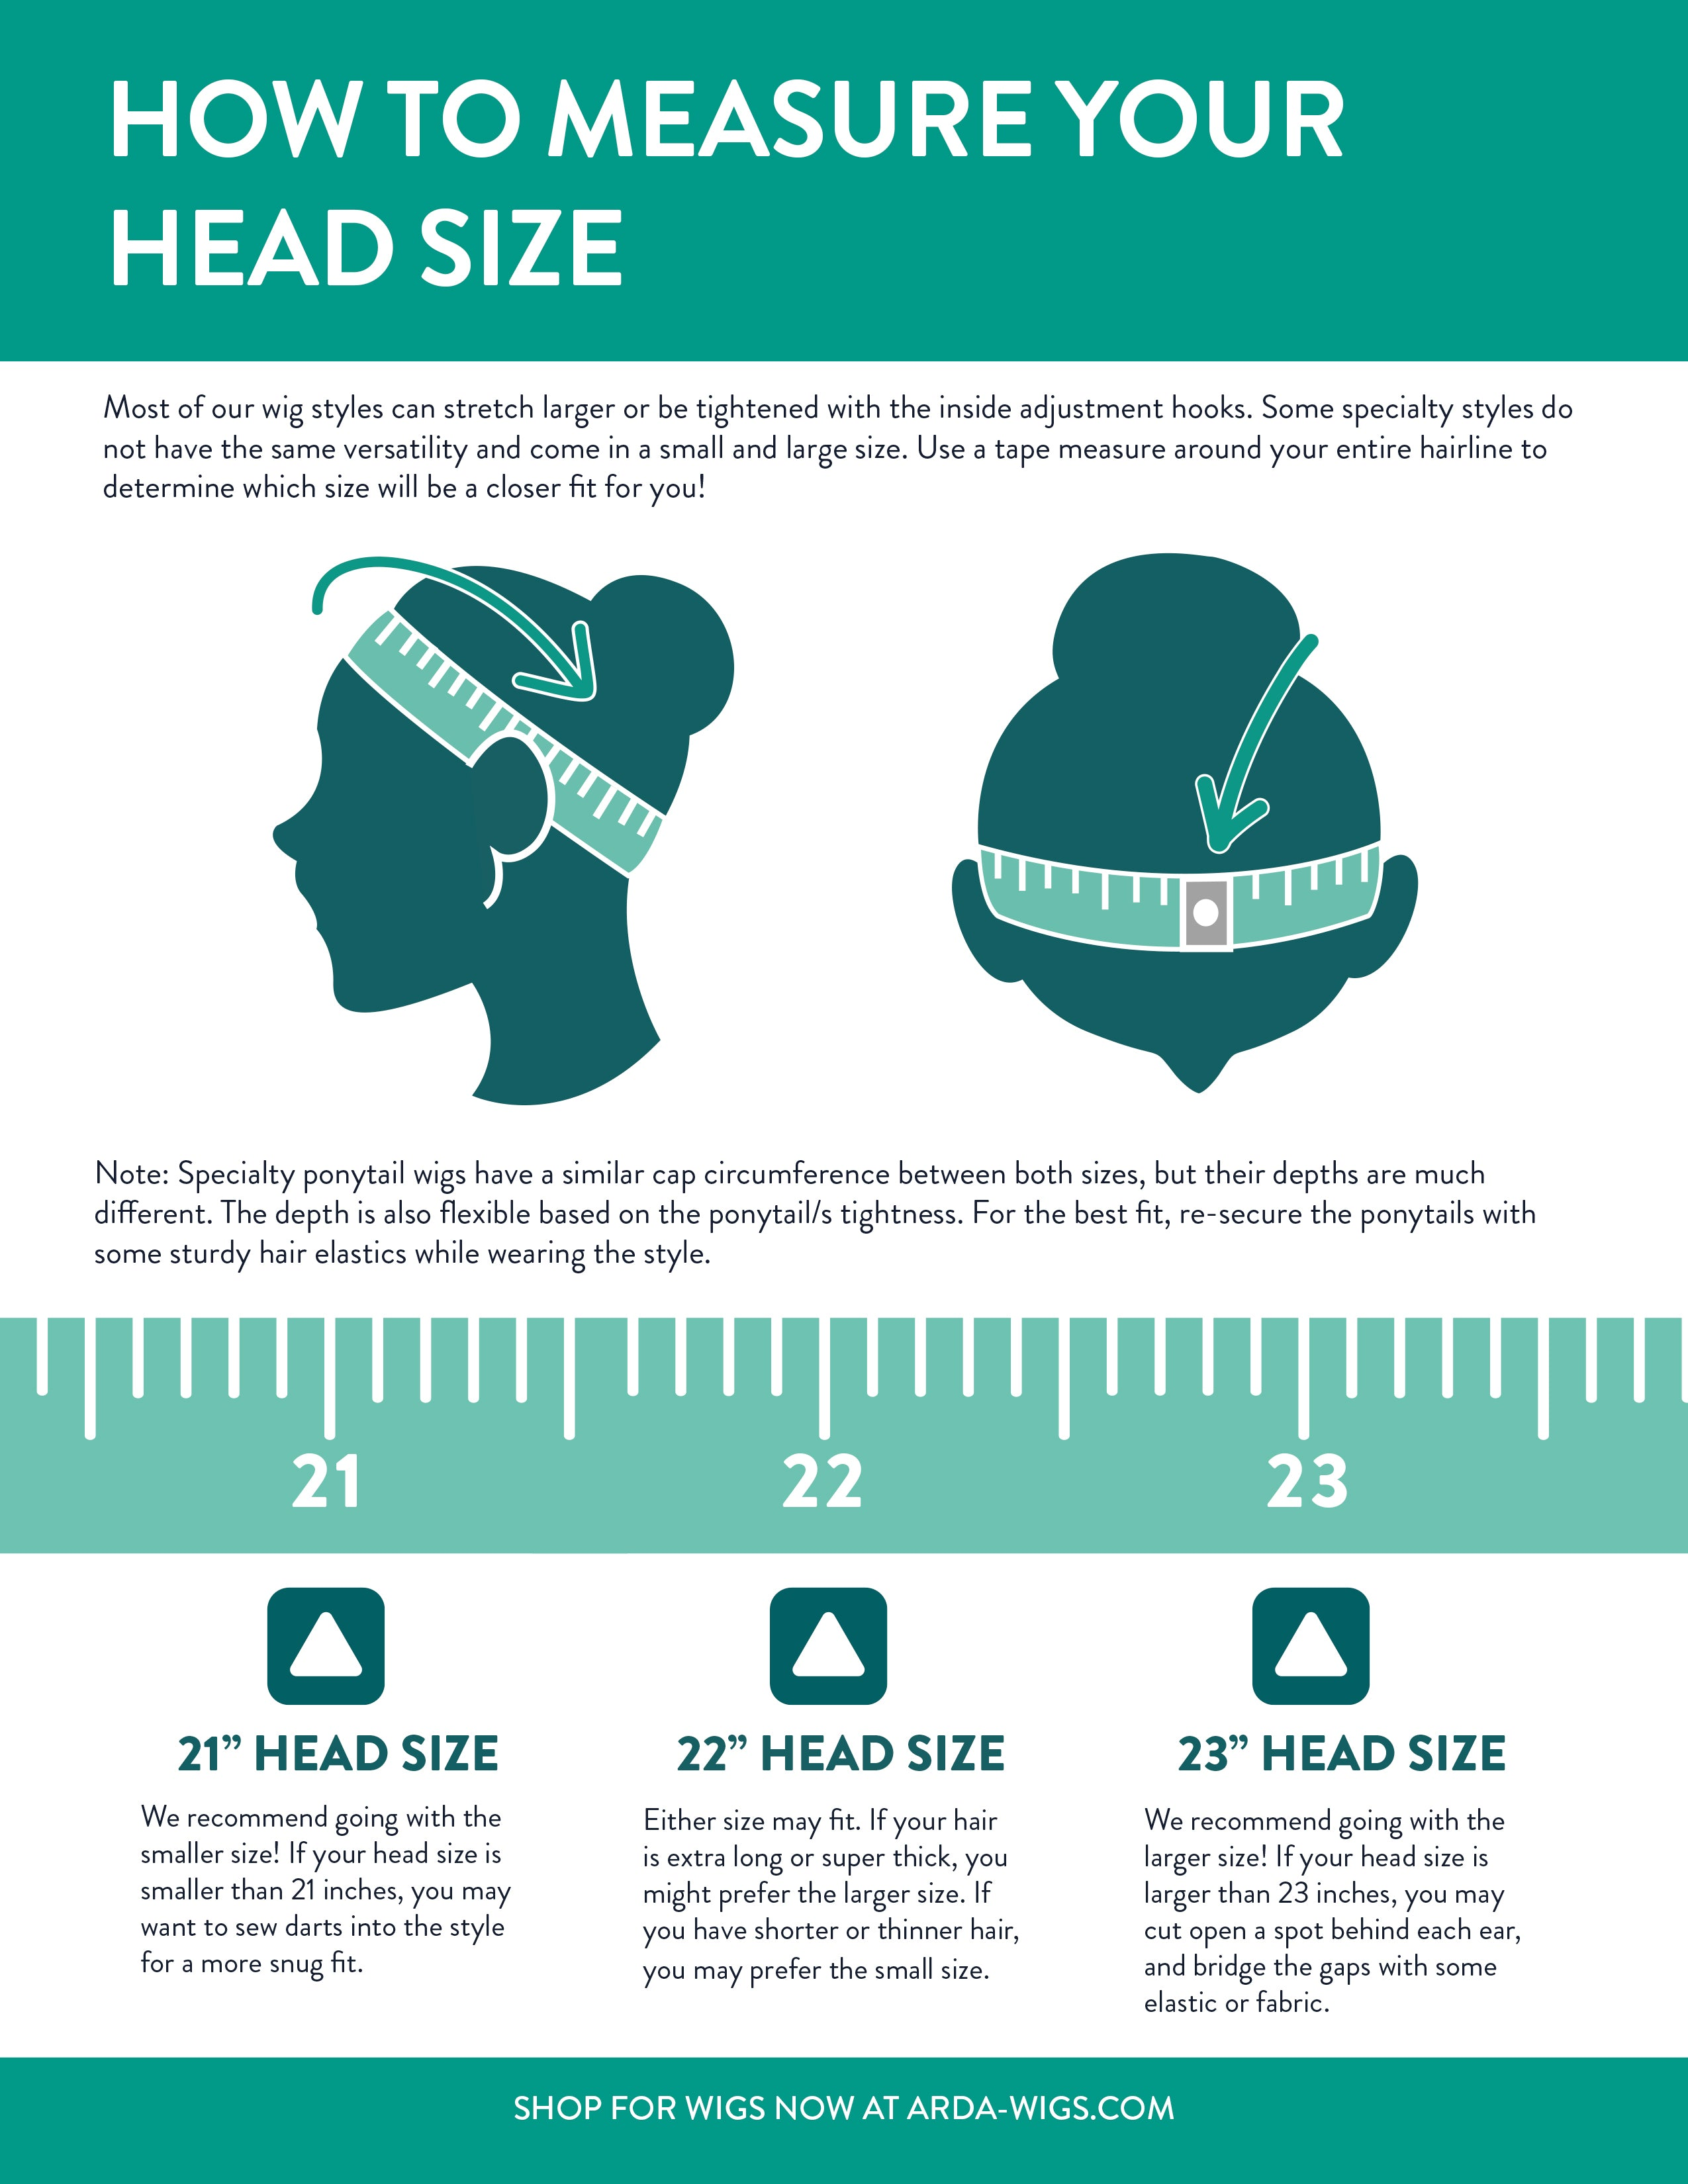 00f8c686e ... and use the wig's elastic to bridge the gaps together to give you up to  an extra inch on each side. Below is a handy head measuring guide for our  wigs!